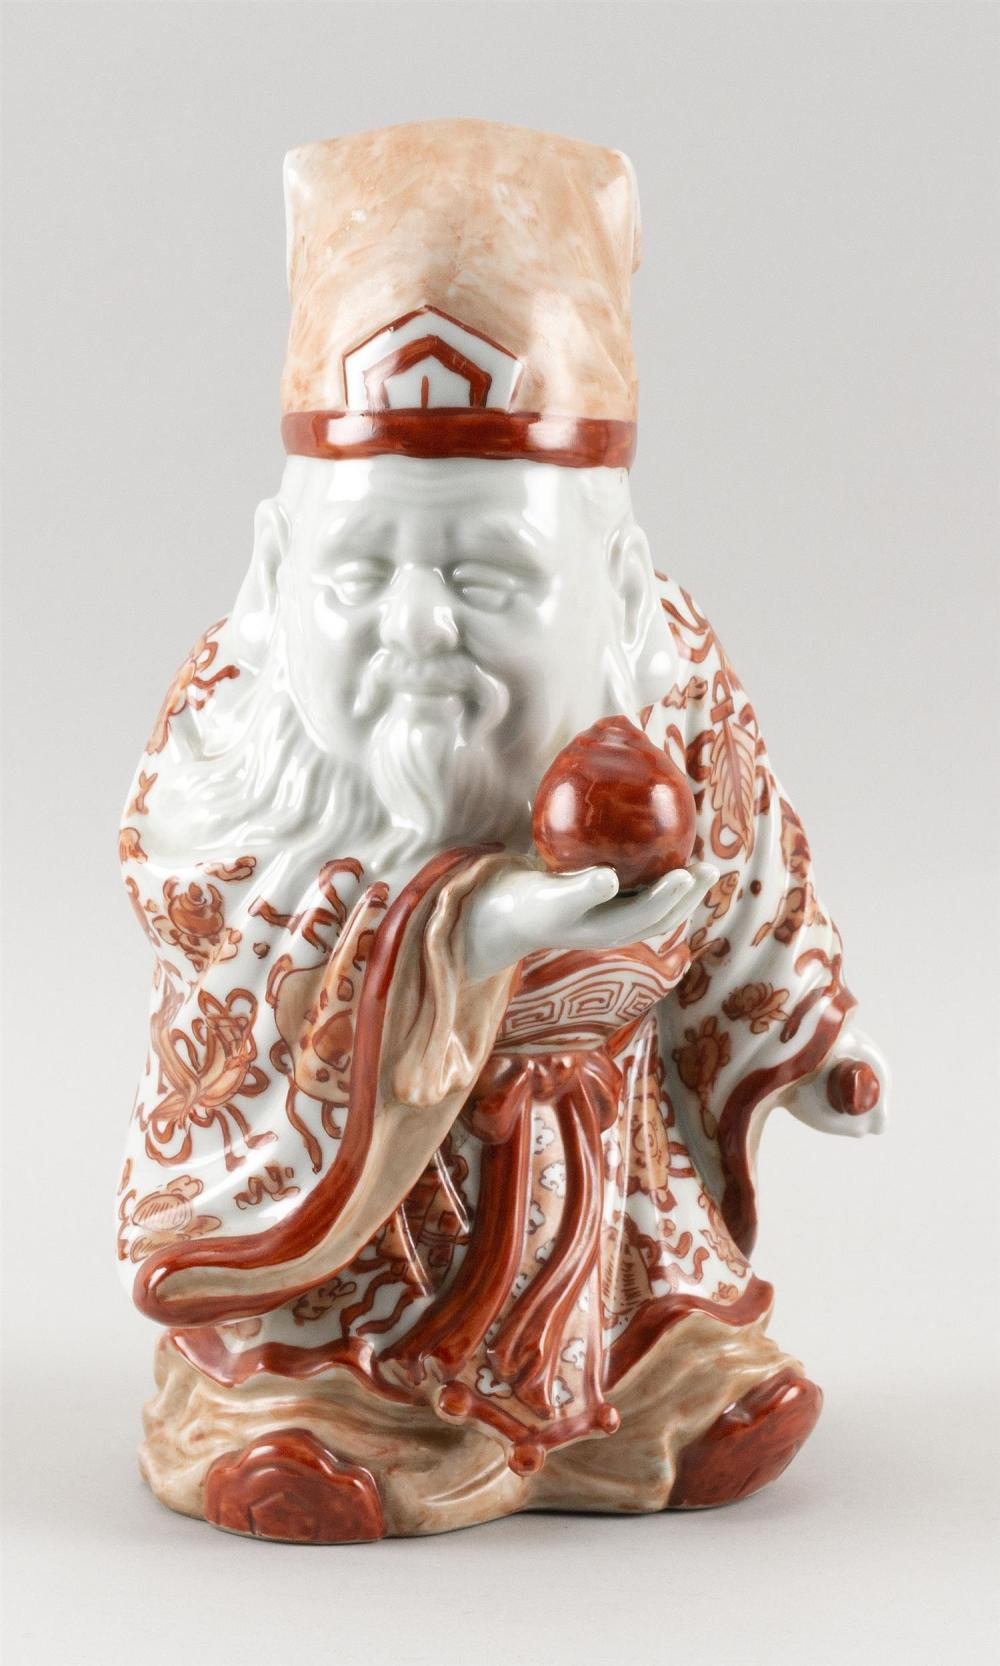 """CHINESE PORCELAIN FIGURE OF SHOU-LAO In orange and white robes and holding a peach and a scepter. Height 11""""."""